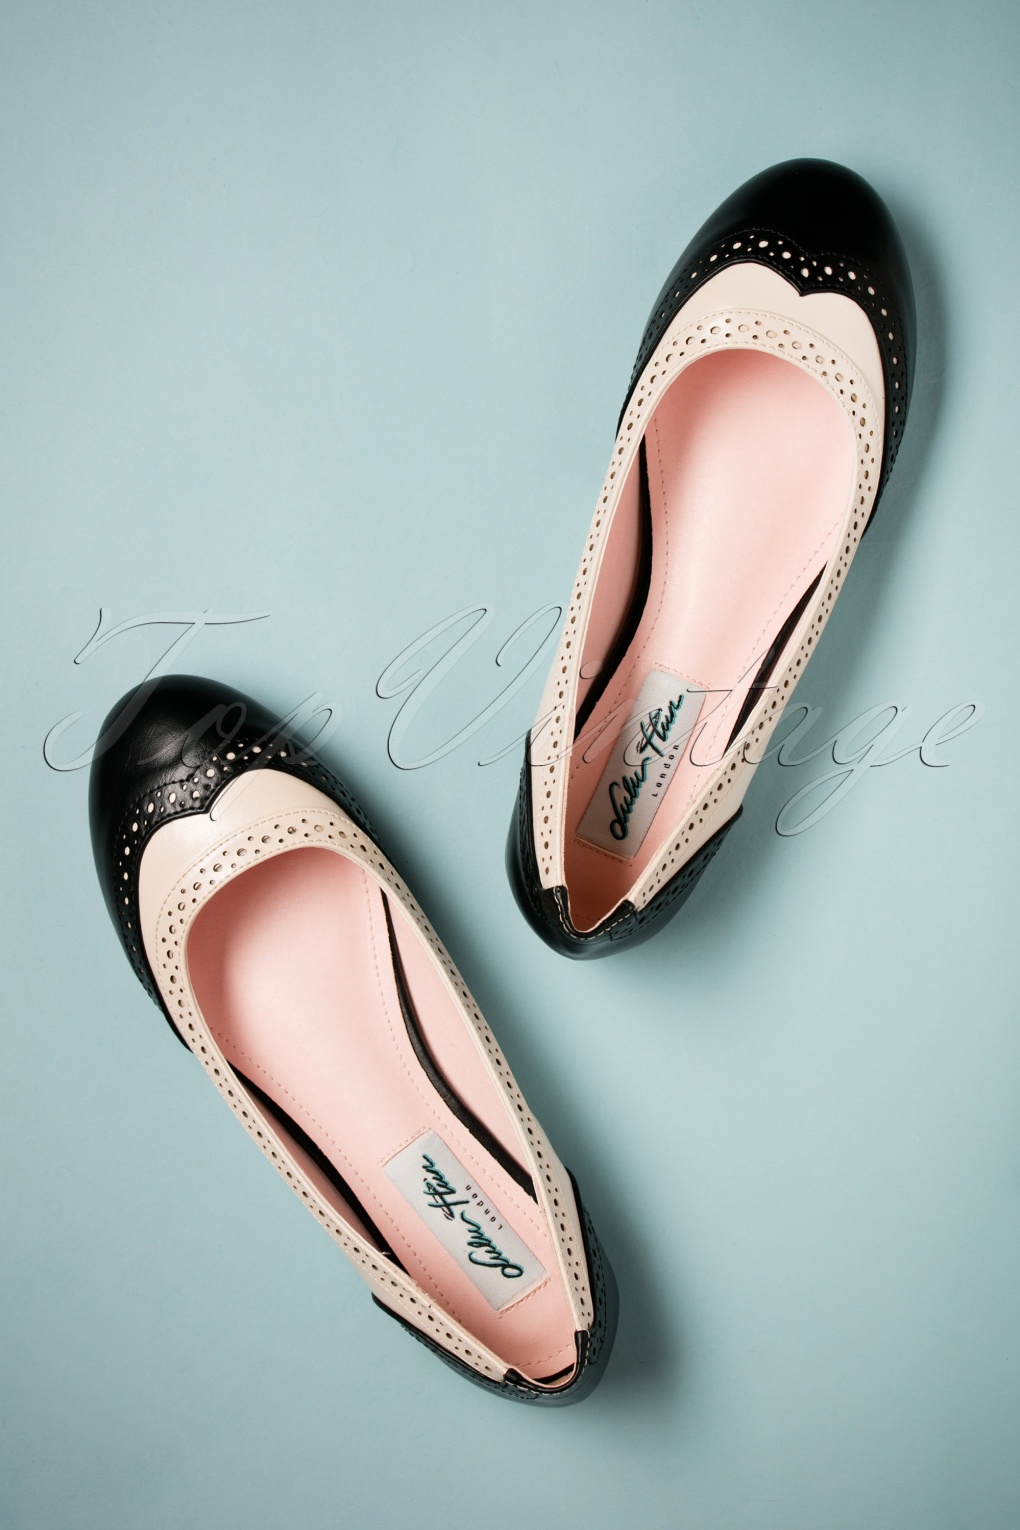 Vintage Style Shoes, Vintage Inspired Shoes 60s Linda Flats in Black and White £35.07 AT vintagedancer.com